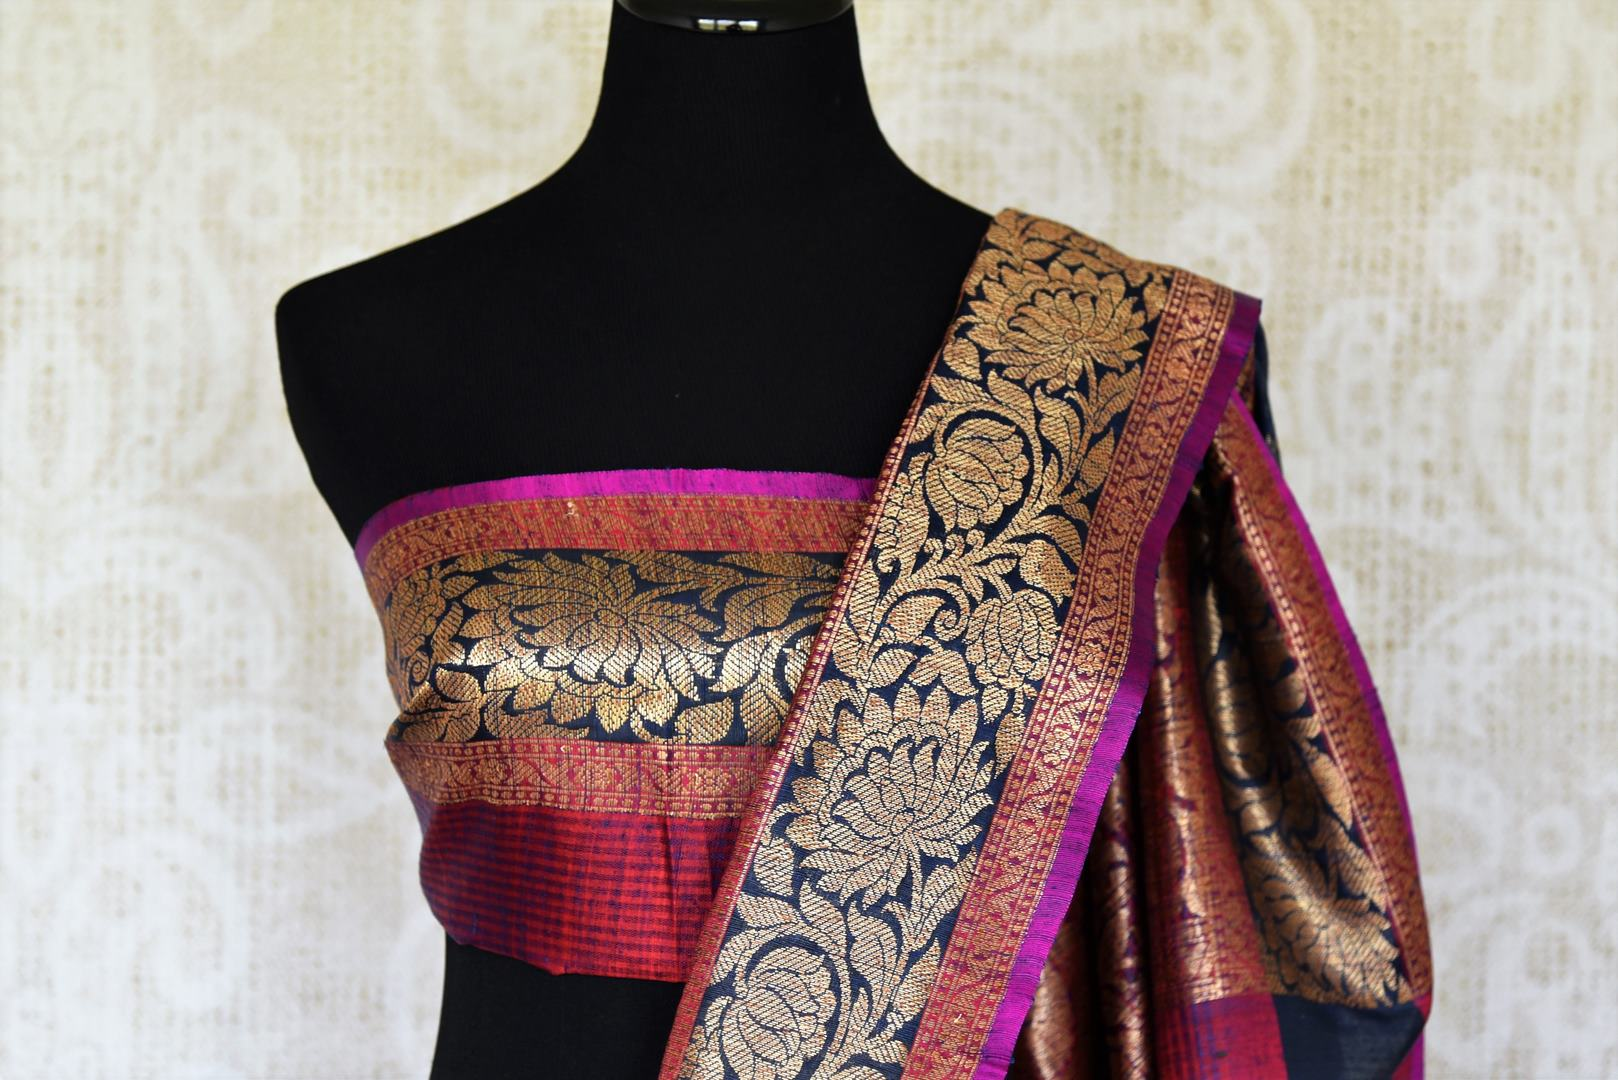 Swing in the gorgeous traditional royal blue tussar banarsi silk sari. It comes with a designer zari border and a contrasting pink designer blouse to steal the show. The buta work all over the sari exudes flamboyance of a kind. Shop designer silk sari, printed saree online or visit Pure Elegance store, USA.-blouse pallu